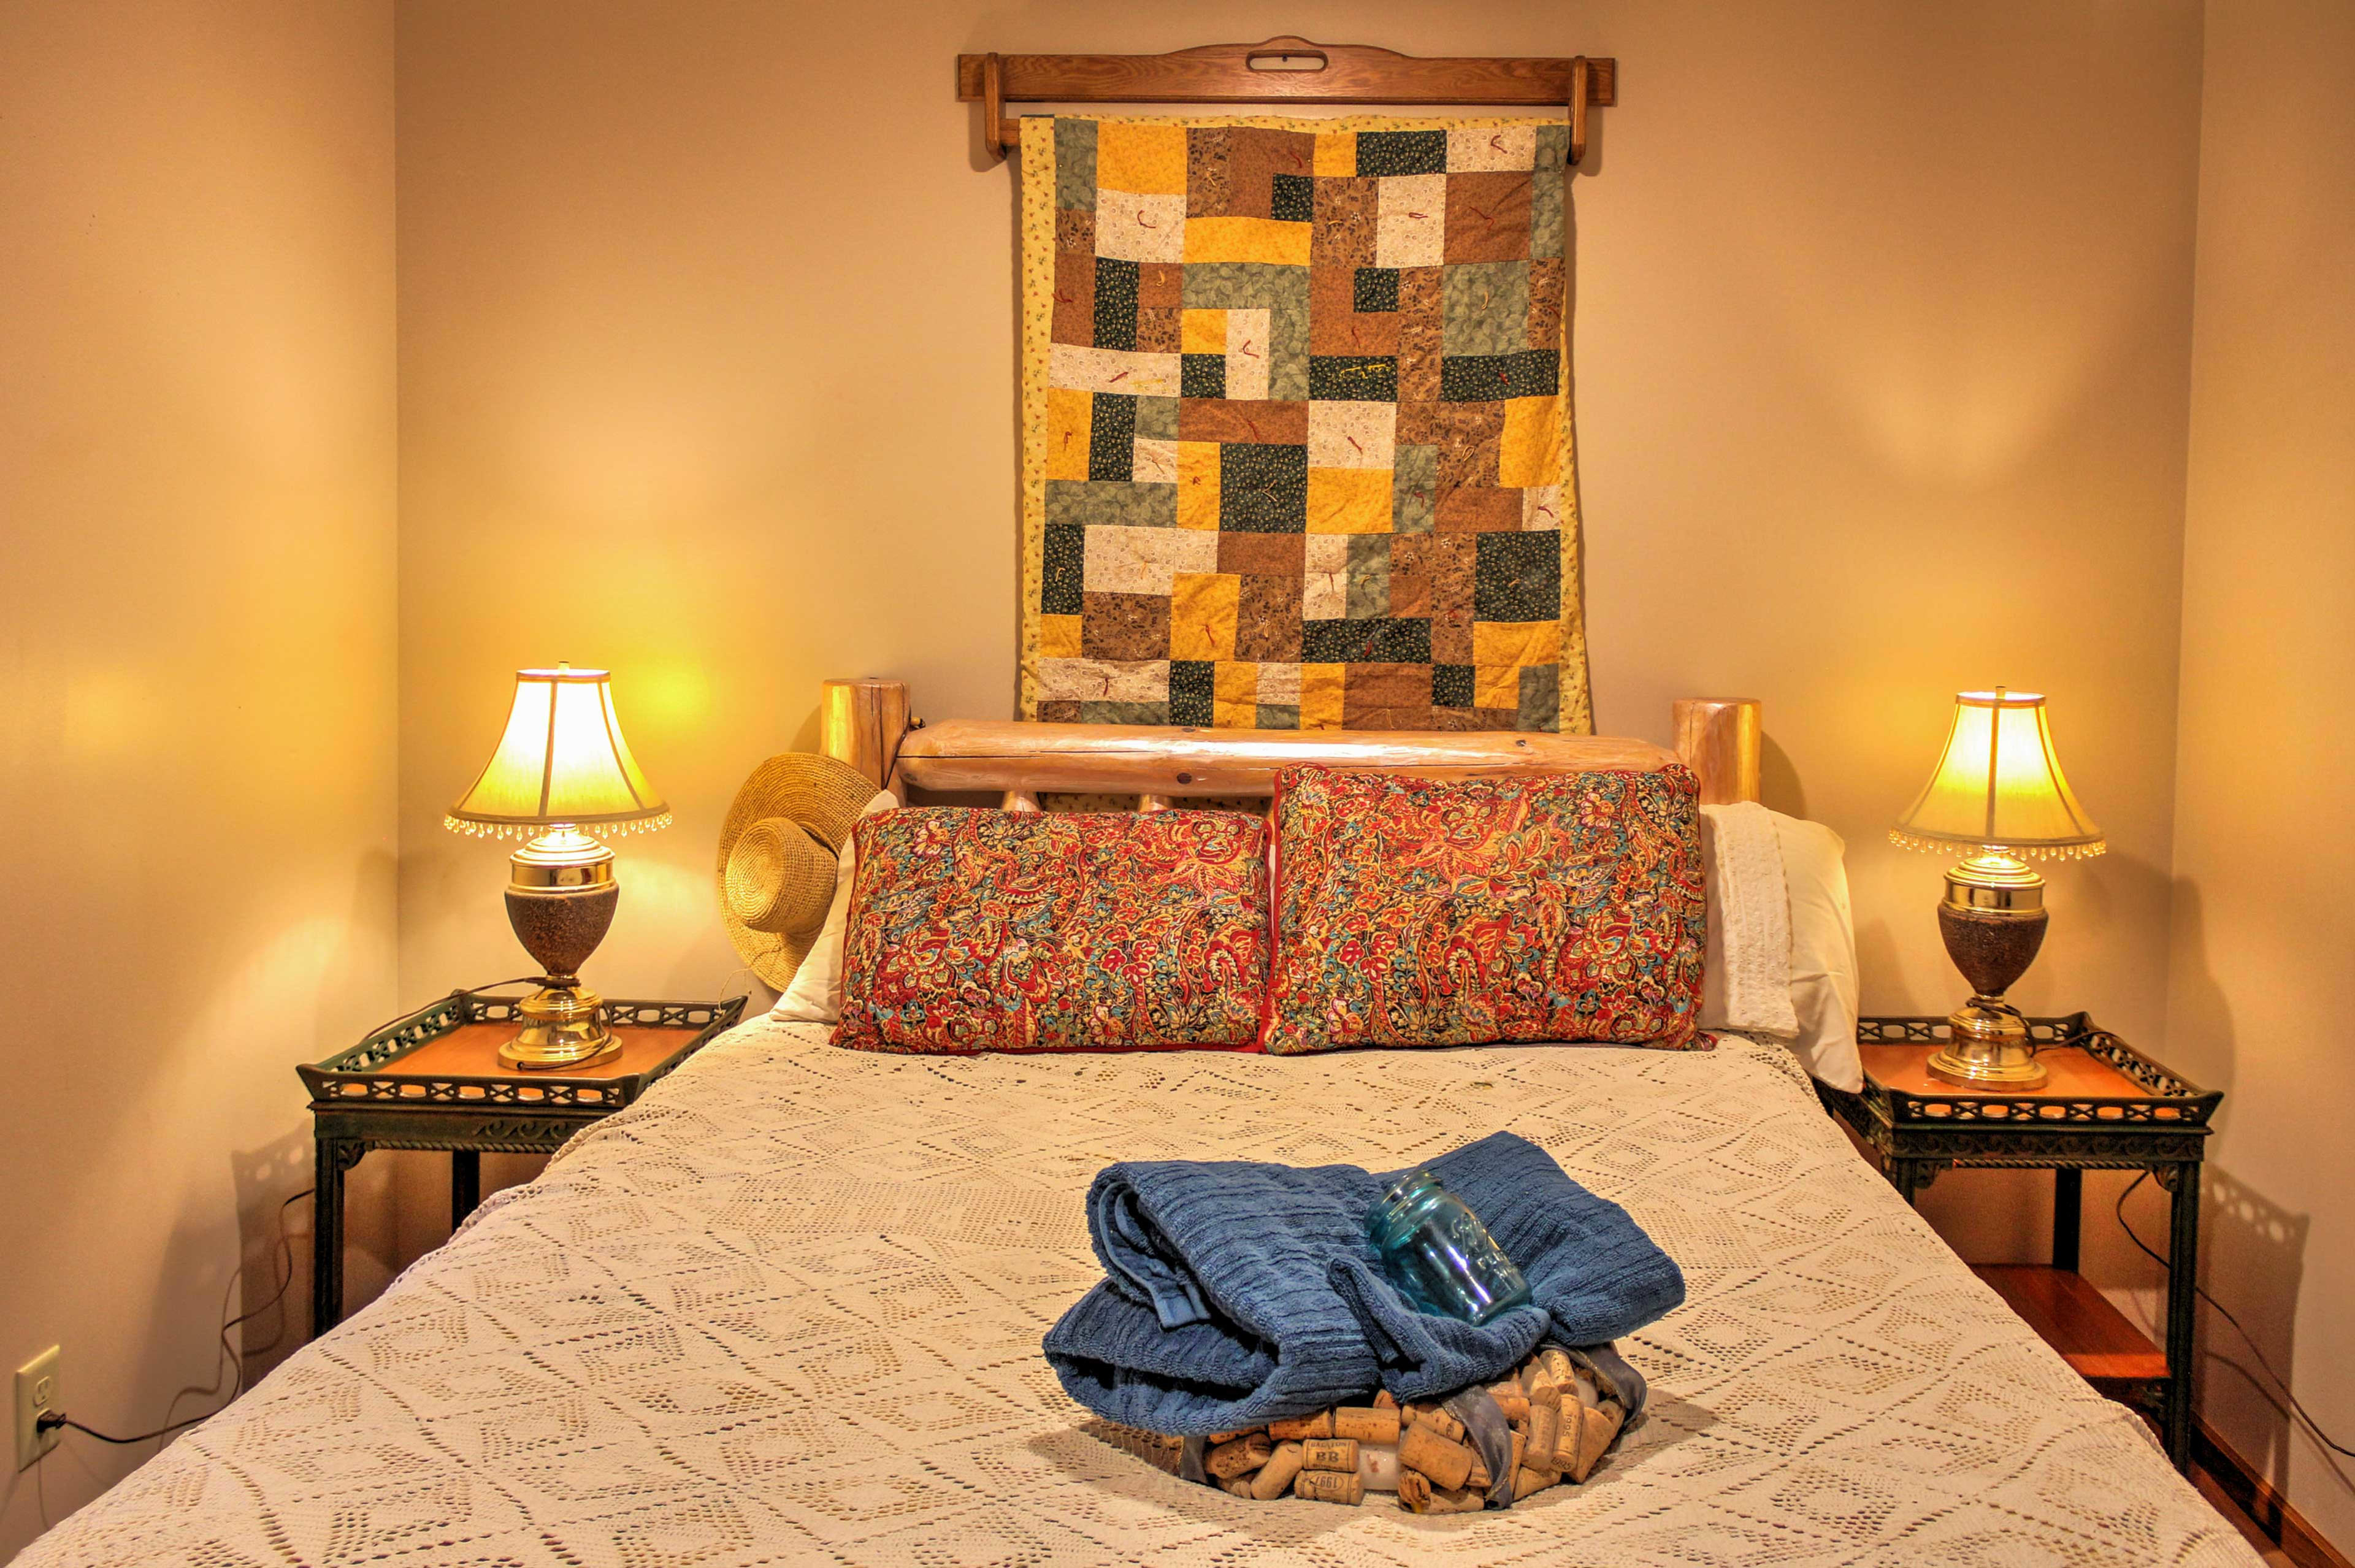 Wake up feeling refreshed after a night spent in this queen-sized bed.